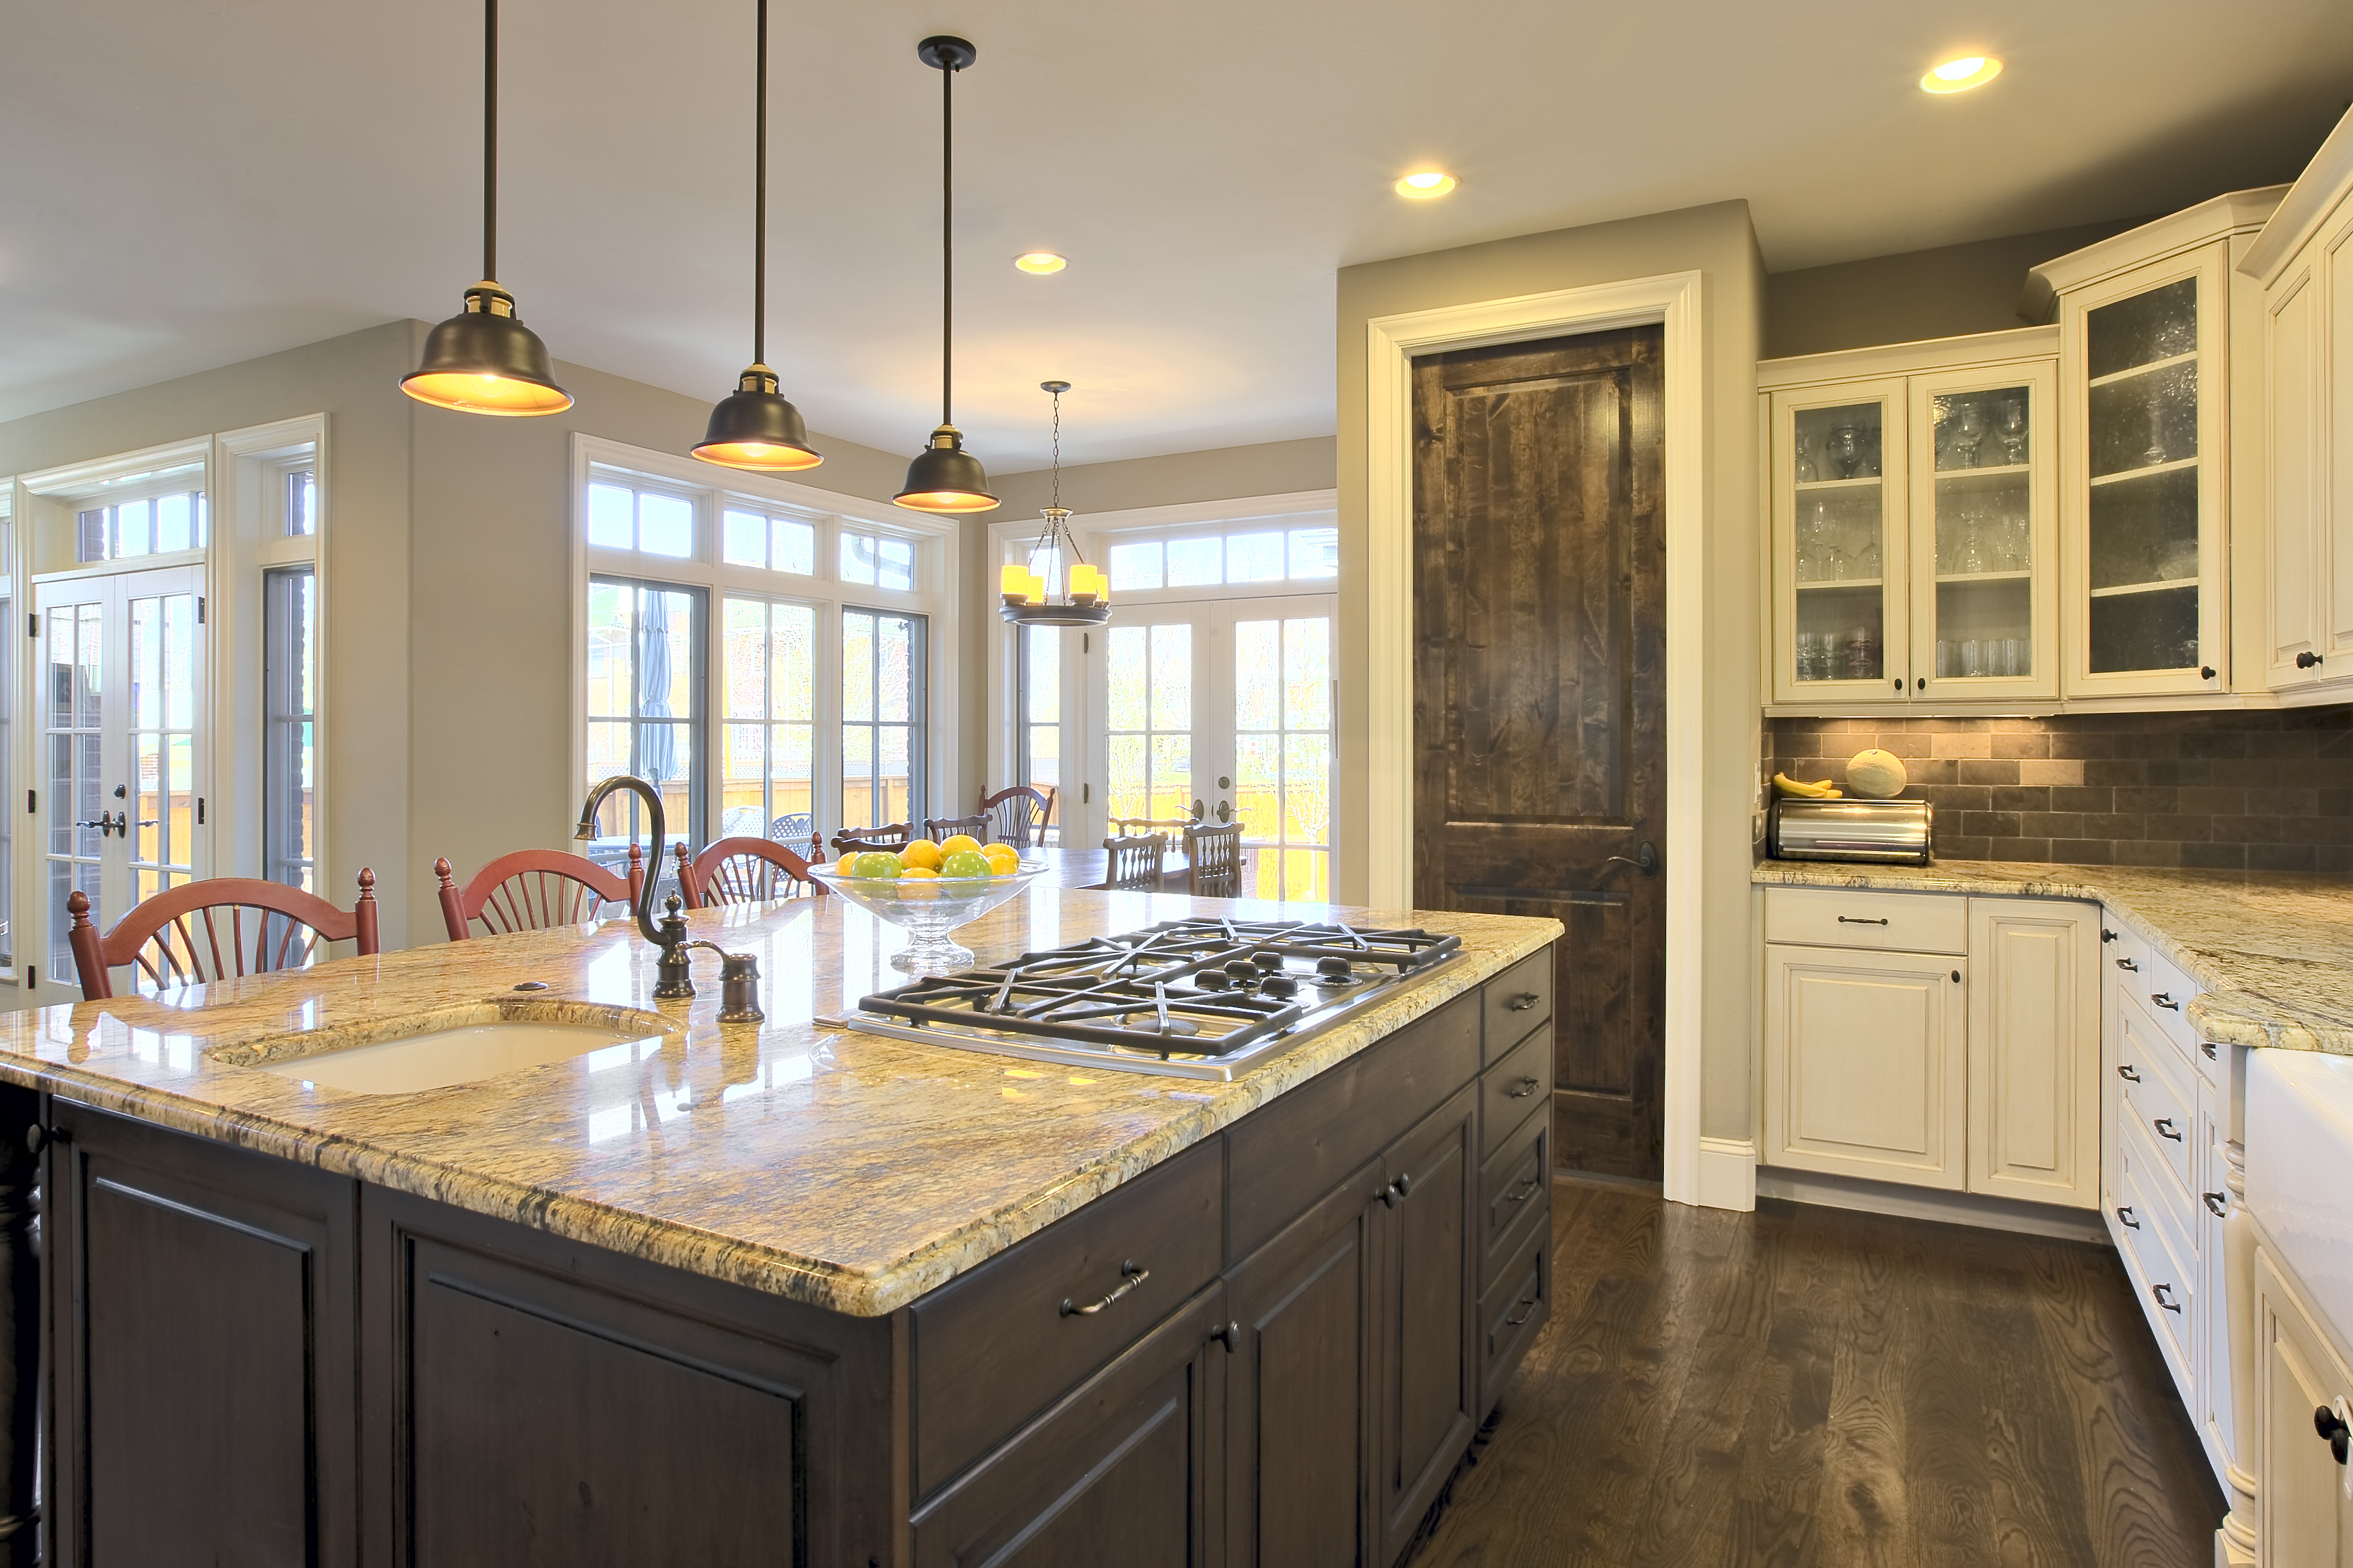 Remodeling Kitchen On A Budget Update Your Kitchen On A Budget On The House